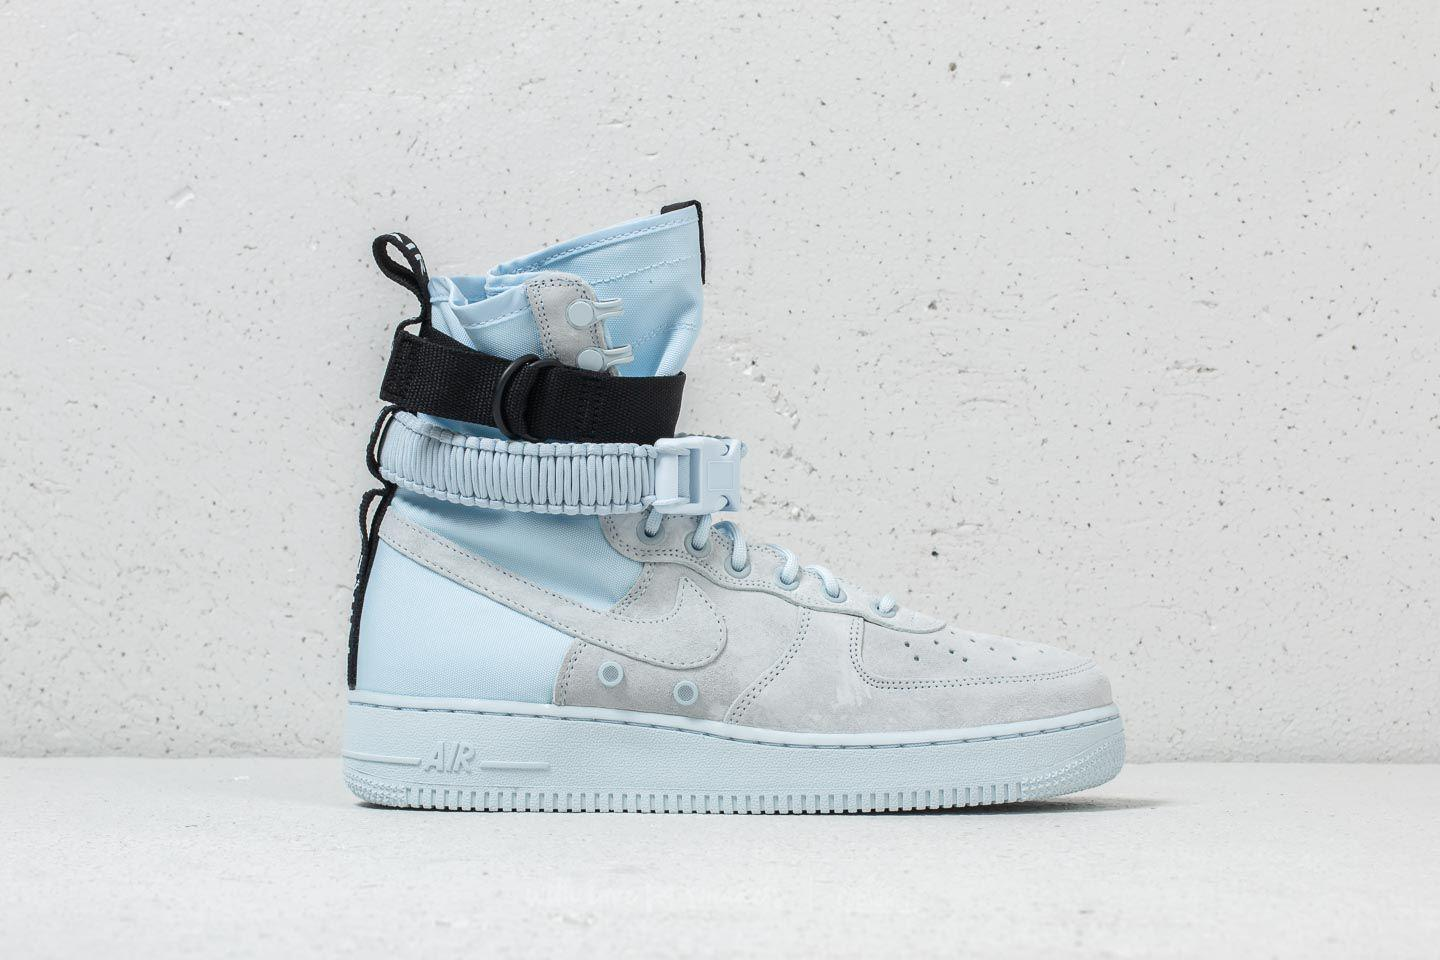 Nike Leather Sf Air Force 1 Blue Tint